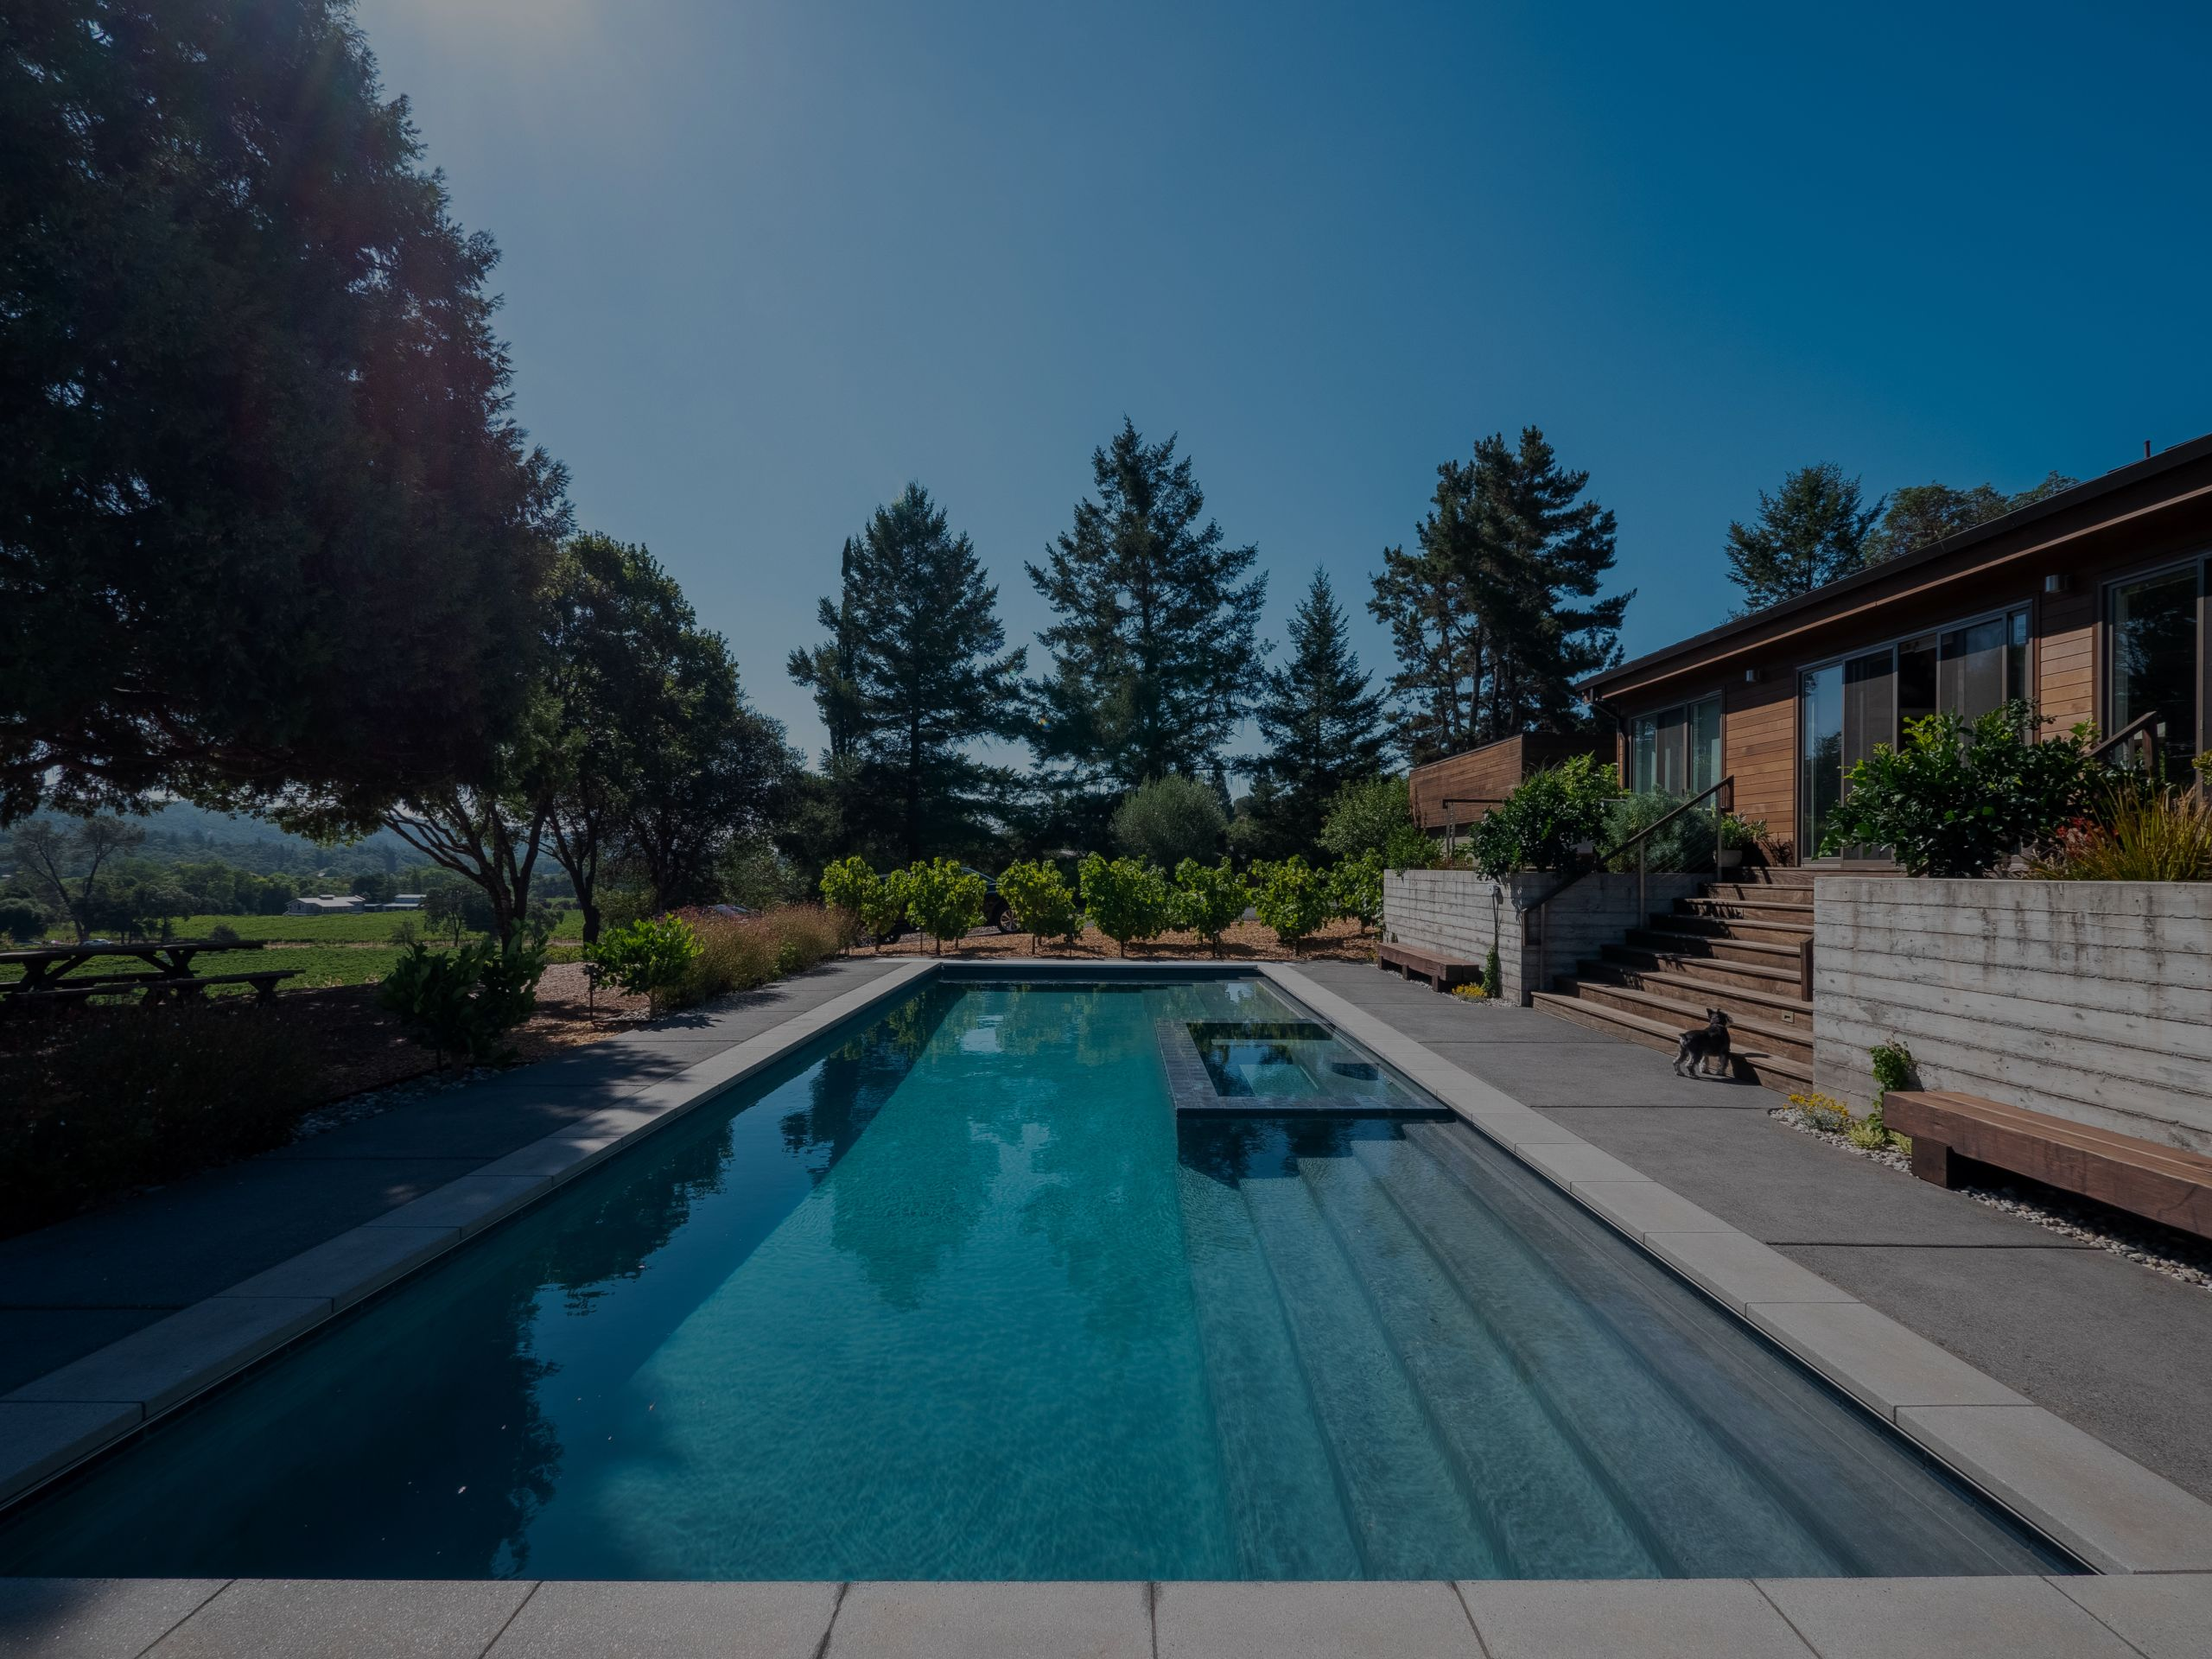 Work From Wine Country At These Two Stunning Rentals With Pools